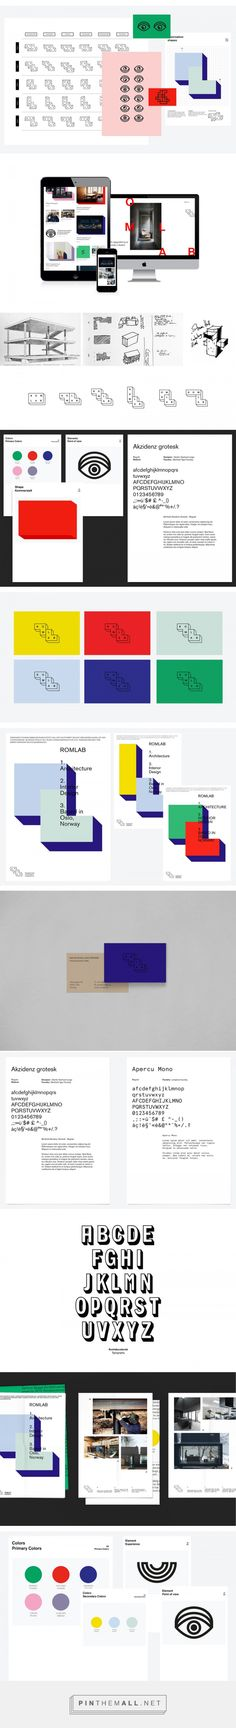 Camille Dorival - Romlab... - a grouped images picture - Pin Them All